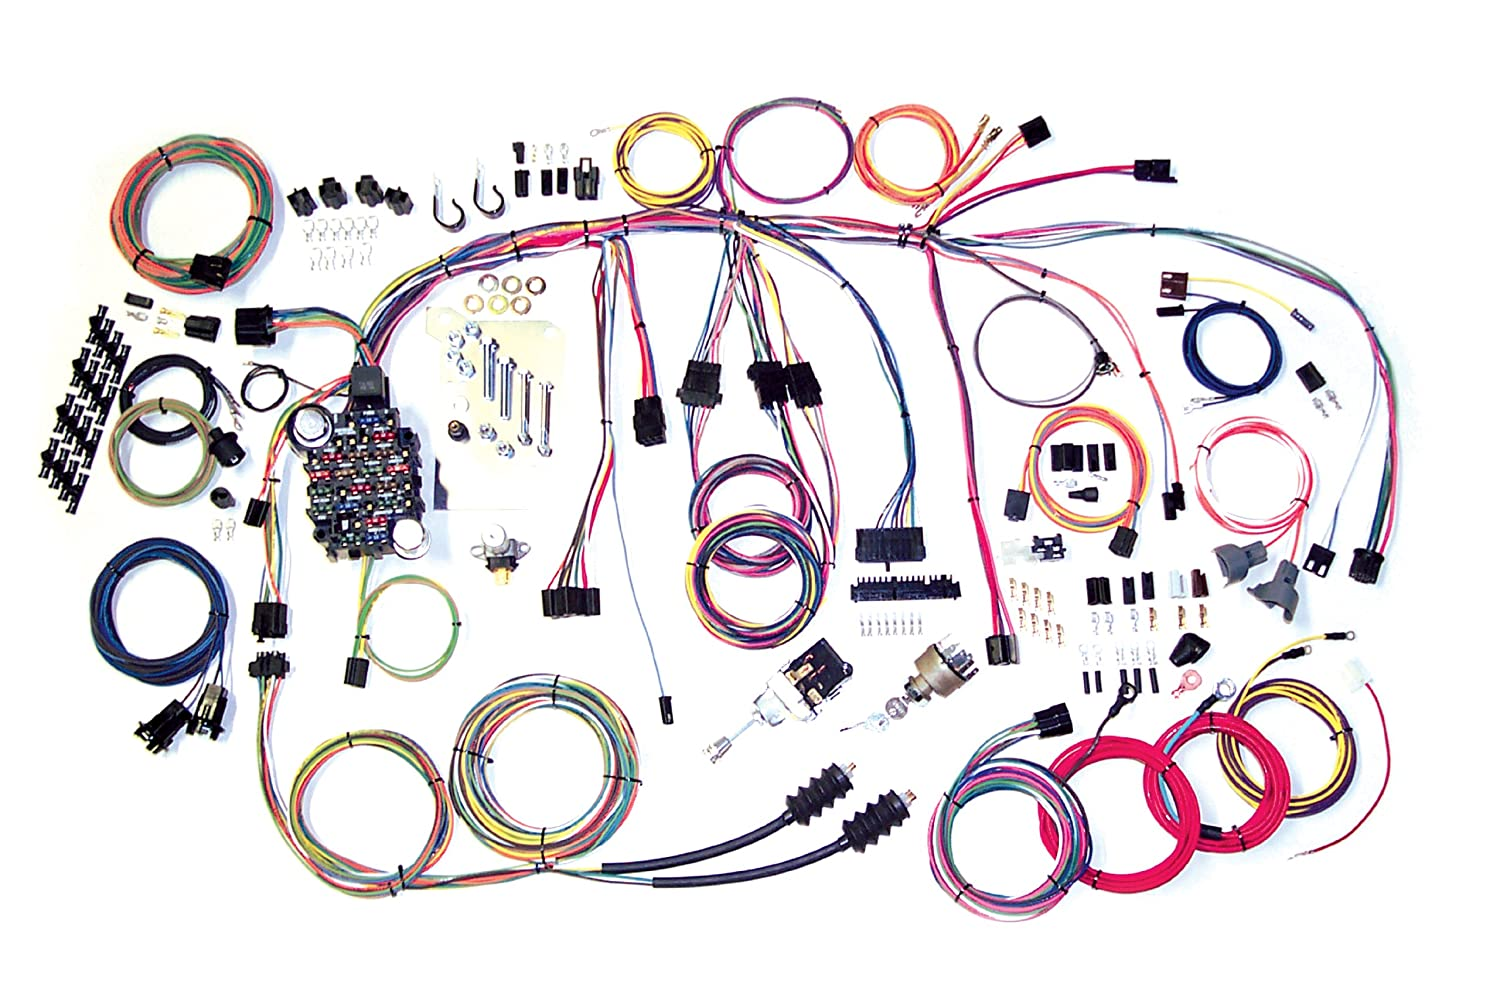 816T8GFu4LL._SL1500_ amazon com american autowire 500560 truck wiring harness for 60 1964 chevy c10 wiring harness at gsmx.co